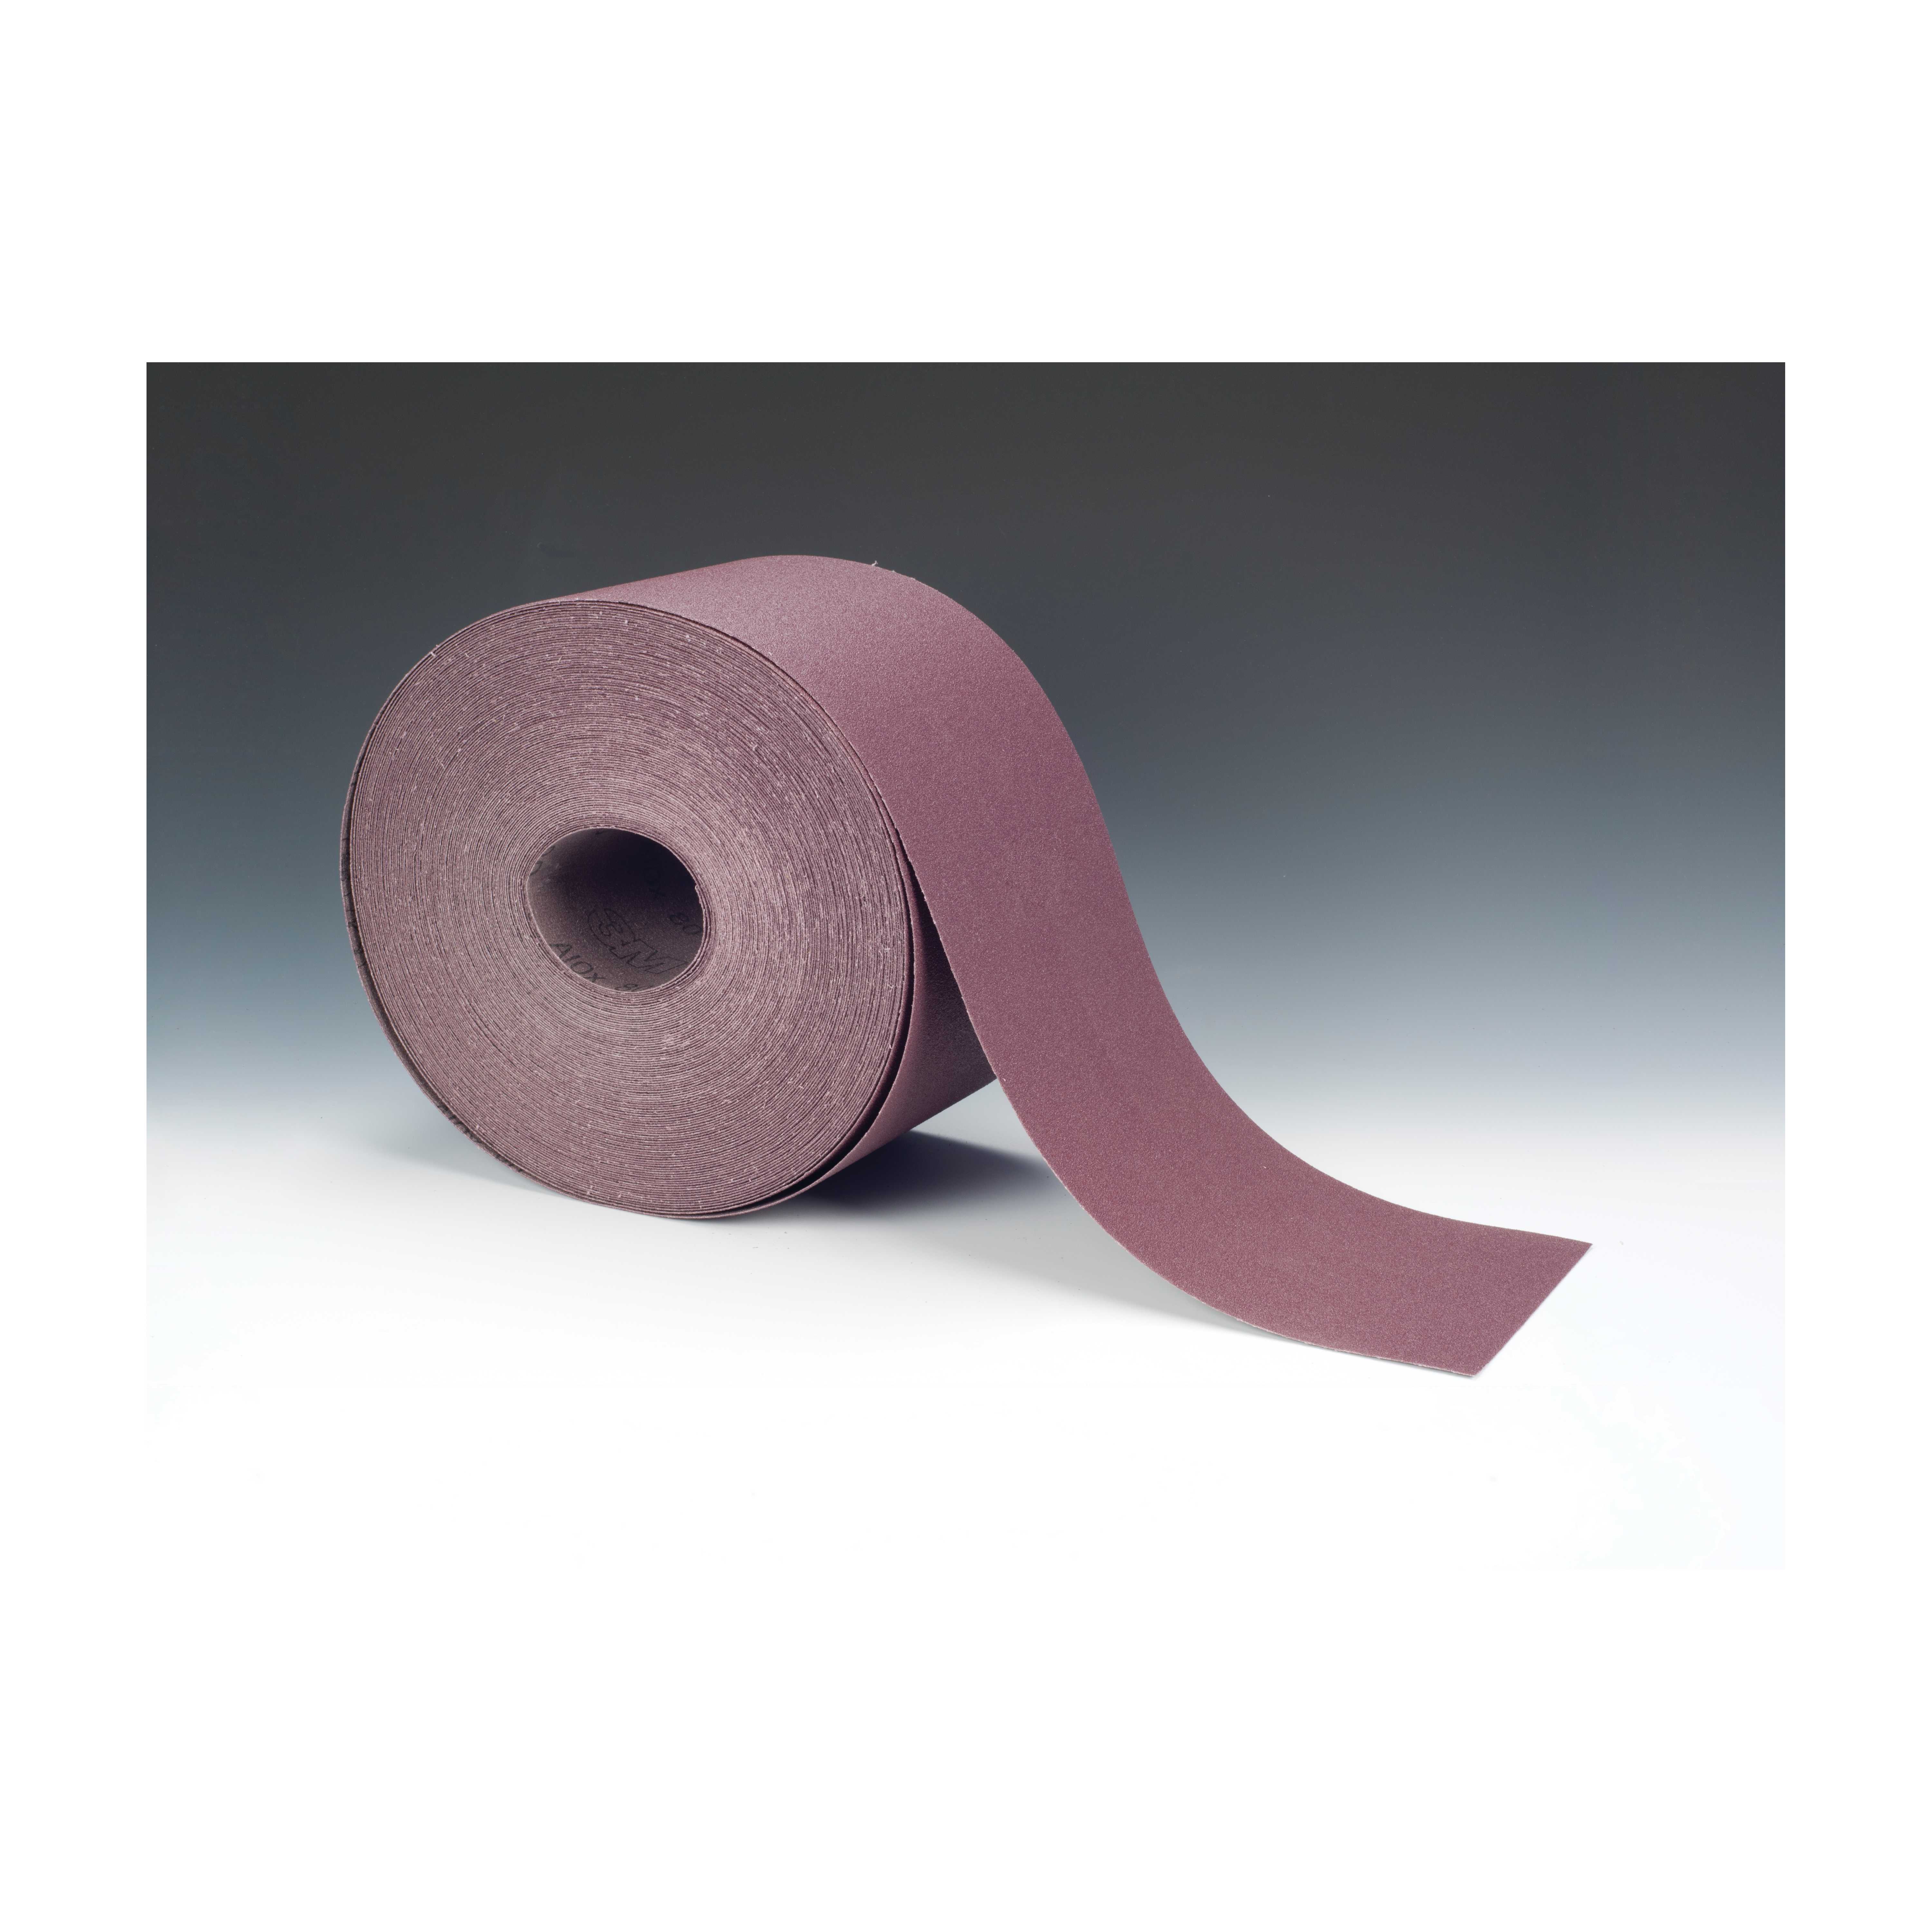 3M™ 048011-08909 Heavy Duty PSA Close Coated Abrasive Roll, 50 yd L x 2 in W, 40 Grit, Coarse Grade, Aluminum Oxide Abrasive, Cloth Backing